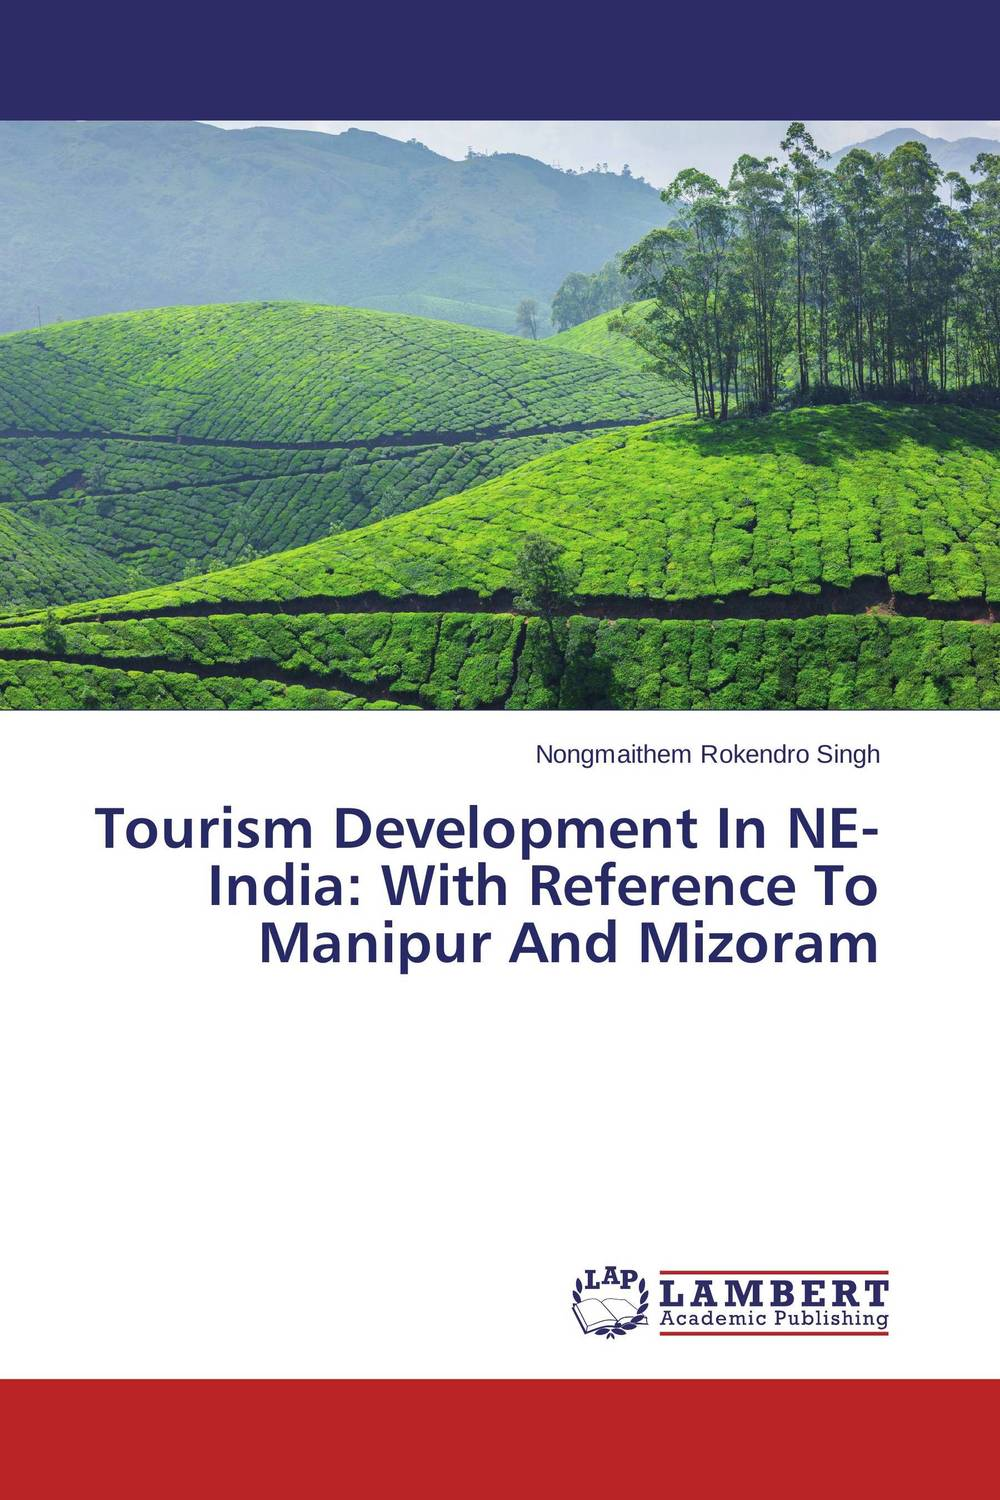 Tourism Development In NE-India: With Reference To Manipur And Mizoram olorunfemi samuel oluwaseyi tourism development in nigeria